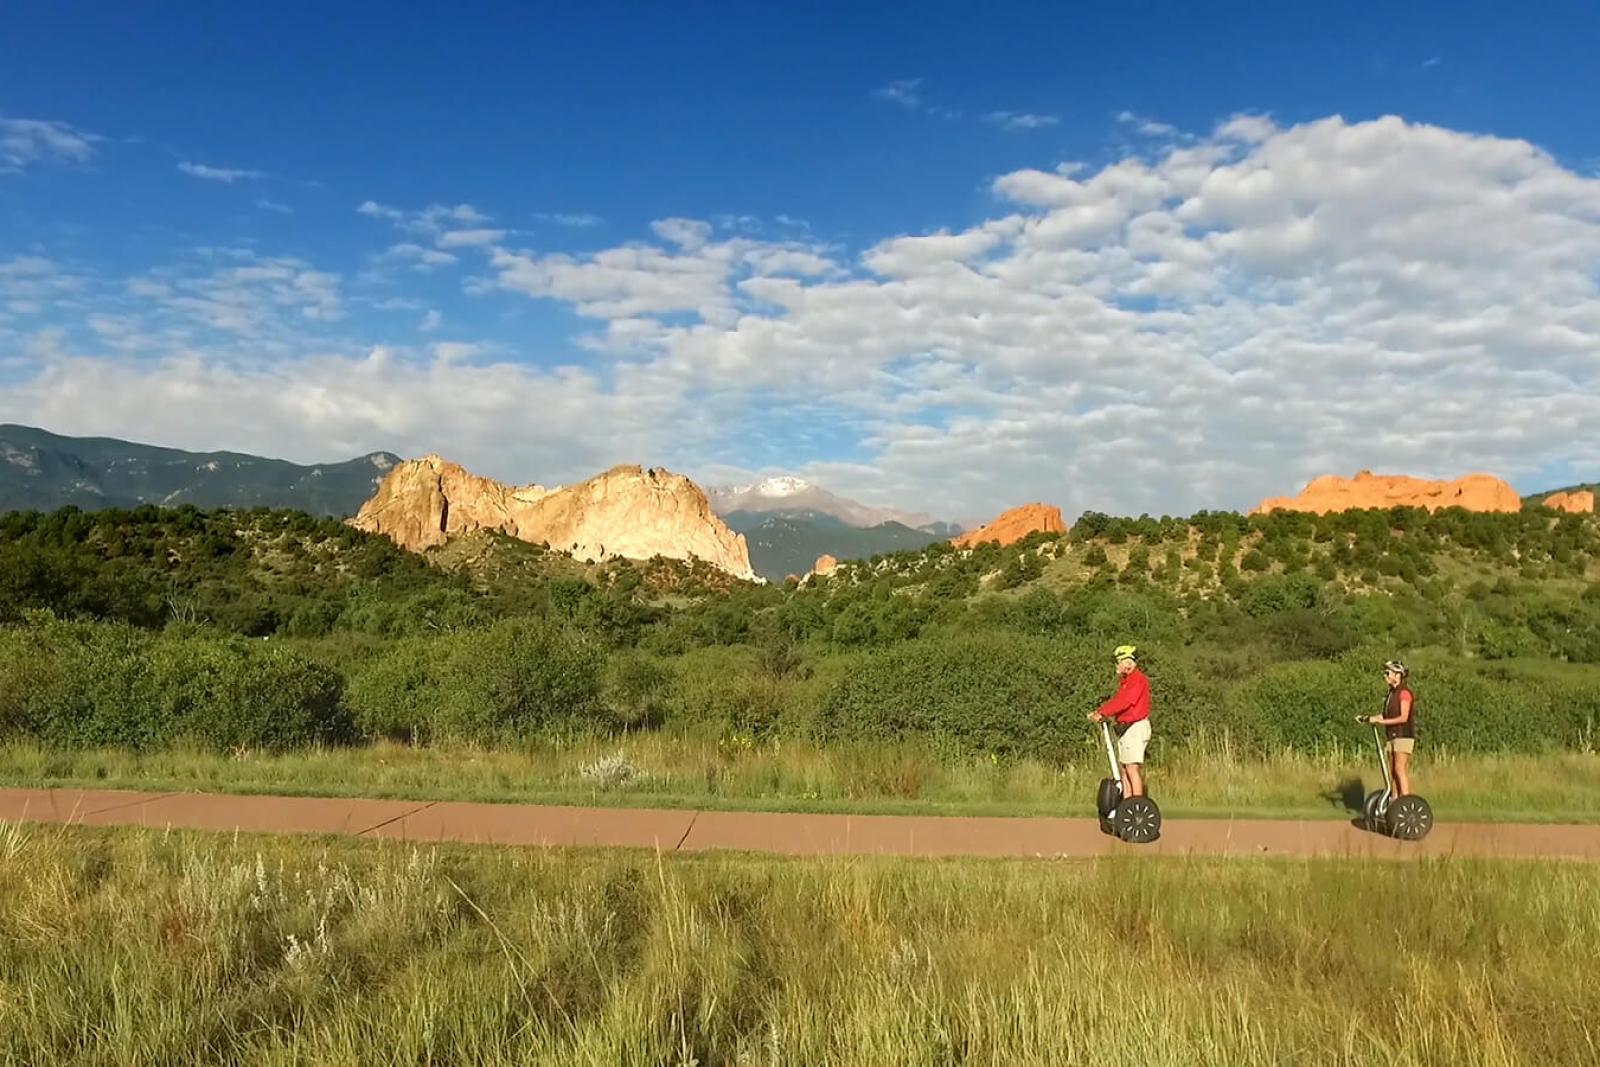 The Garden Of The Gods Visitors Center offers Segways tours